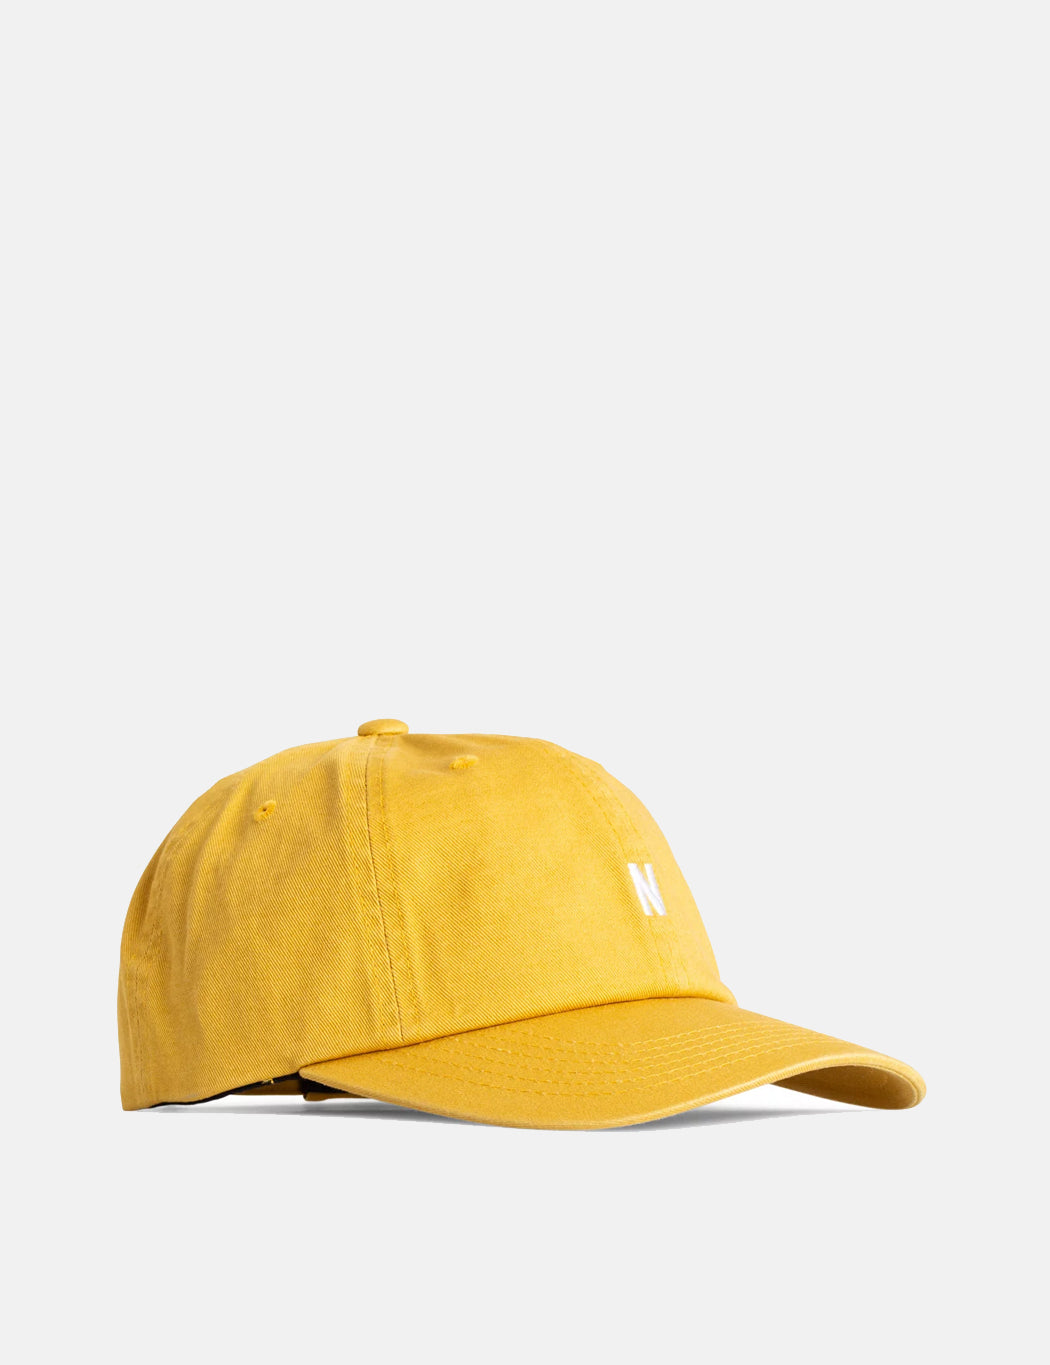 Norse Projects Twill Sports Cap - Montpellier Yellow | URBAN EXCESS.